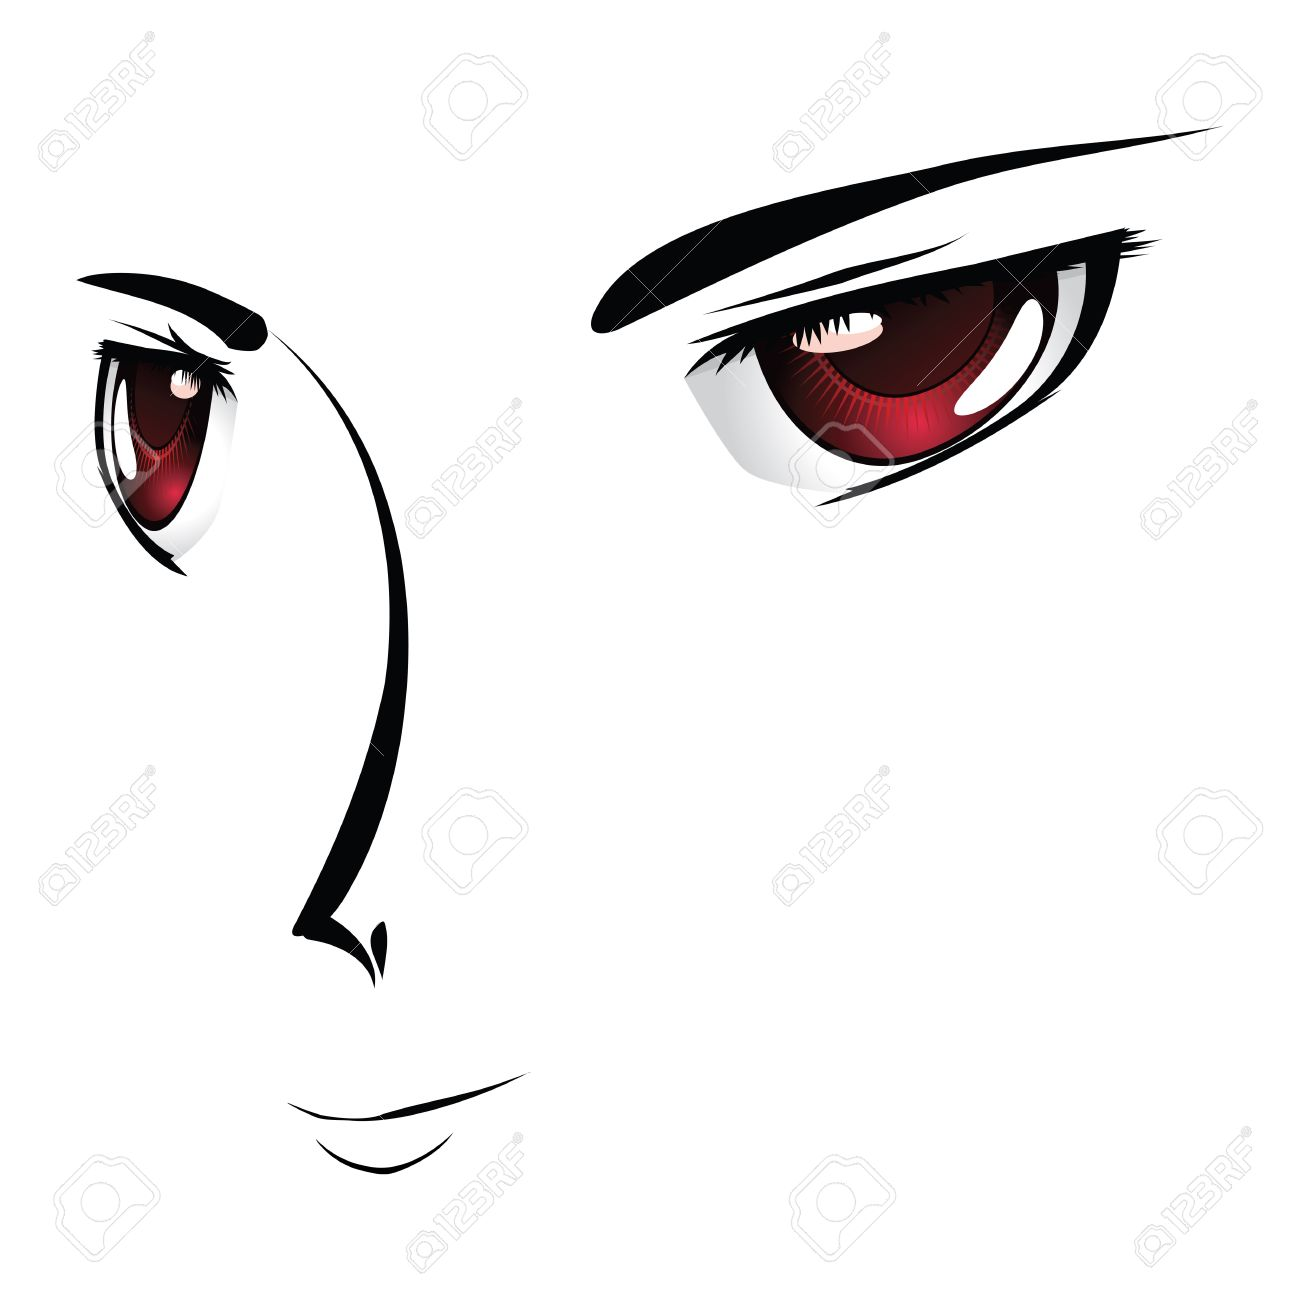 Simple Cartoon Face With Red Eyes In Anime Manga Style Stock Vector